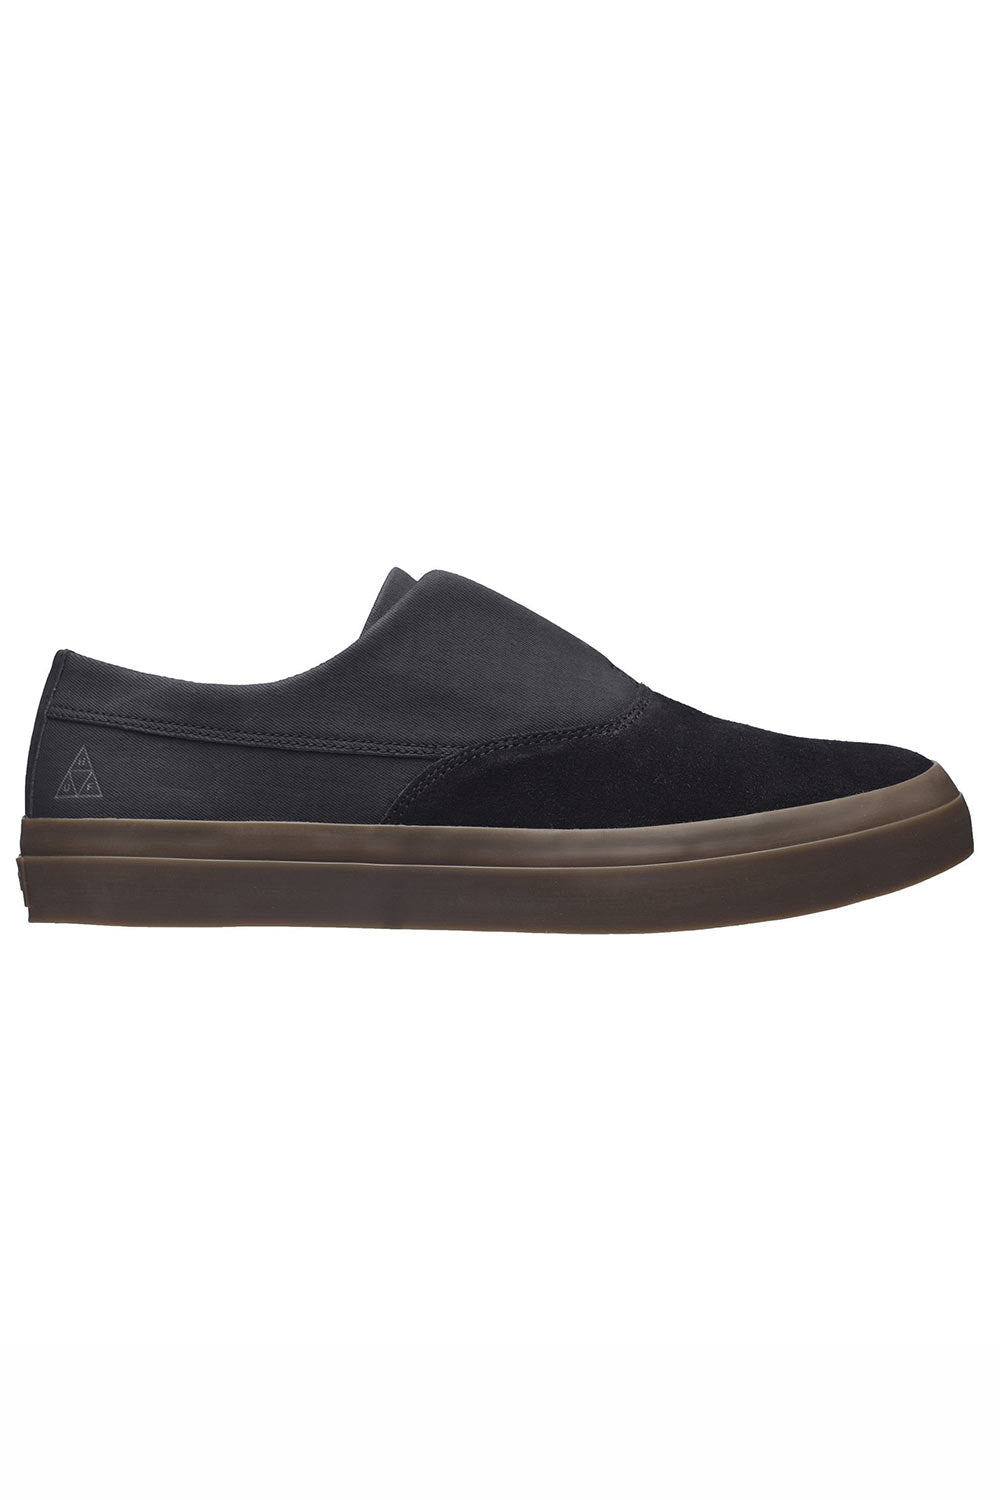 Buy HUF Dylan Slip On Shoes | Buy HUF Footwear Online Australia